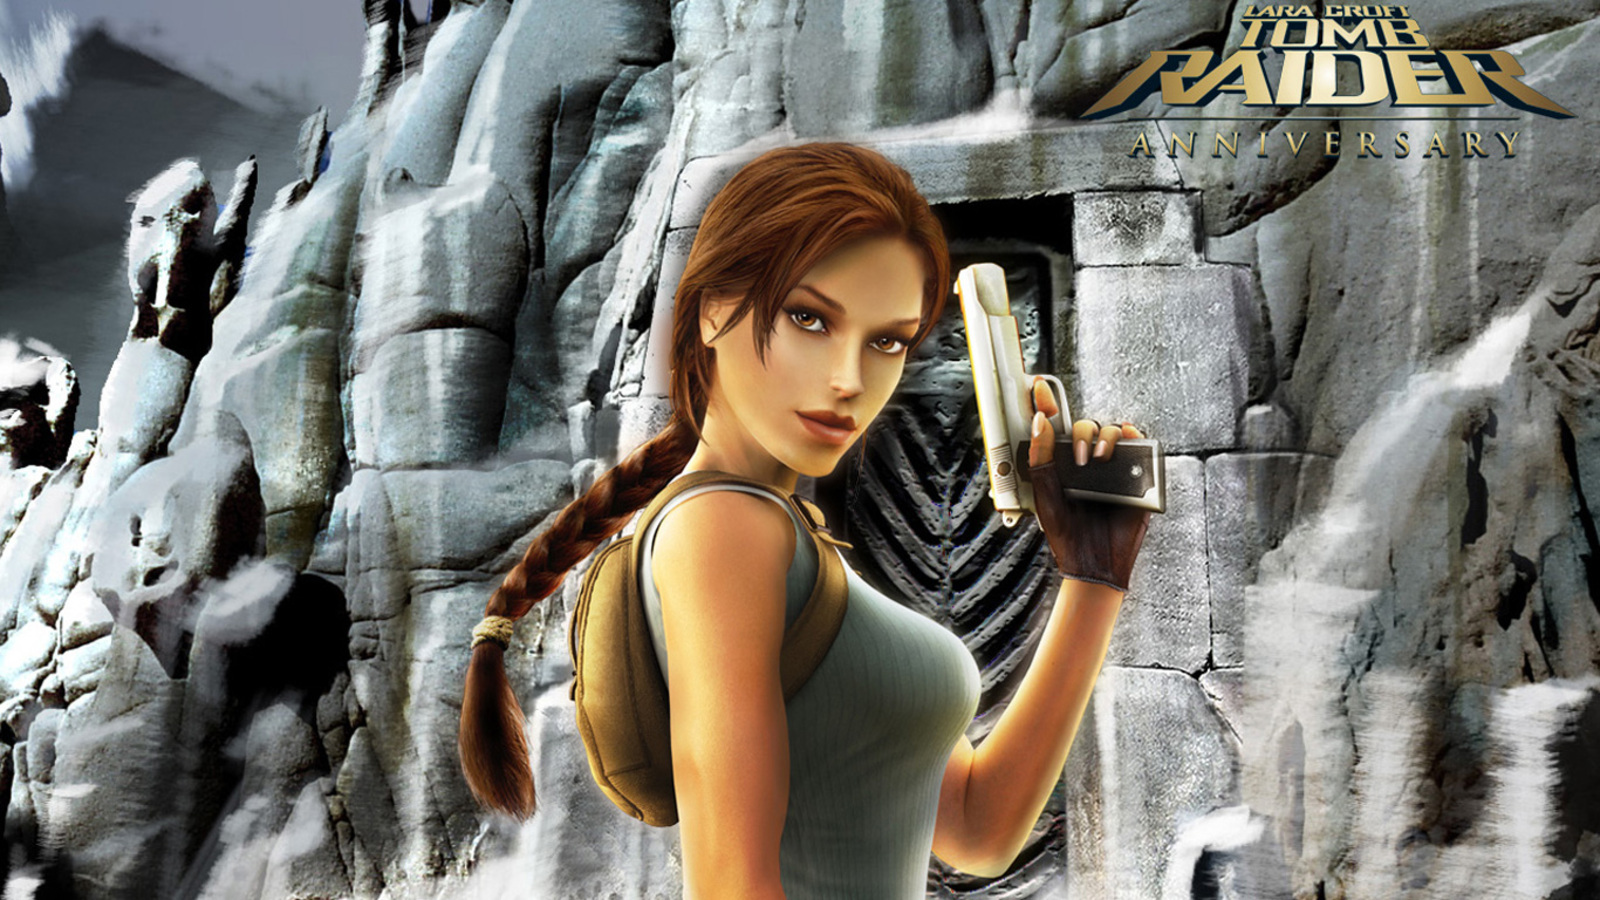 tomb-raider-anniversary-wallpaperTomb Raider Anniversary Wallpaper